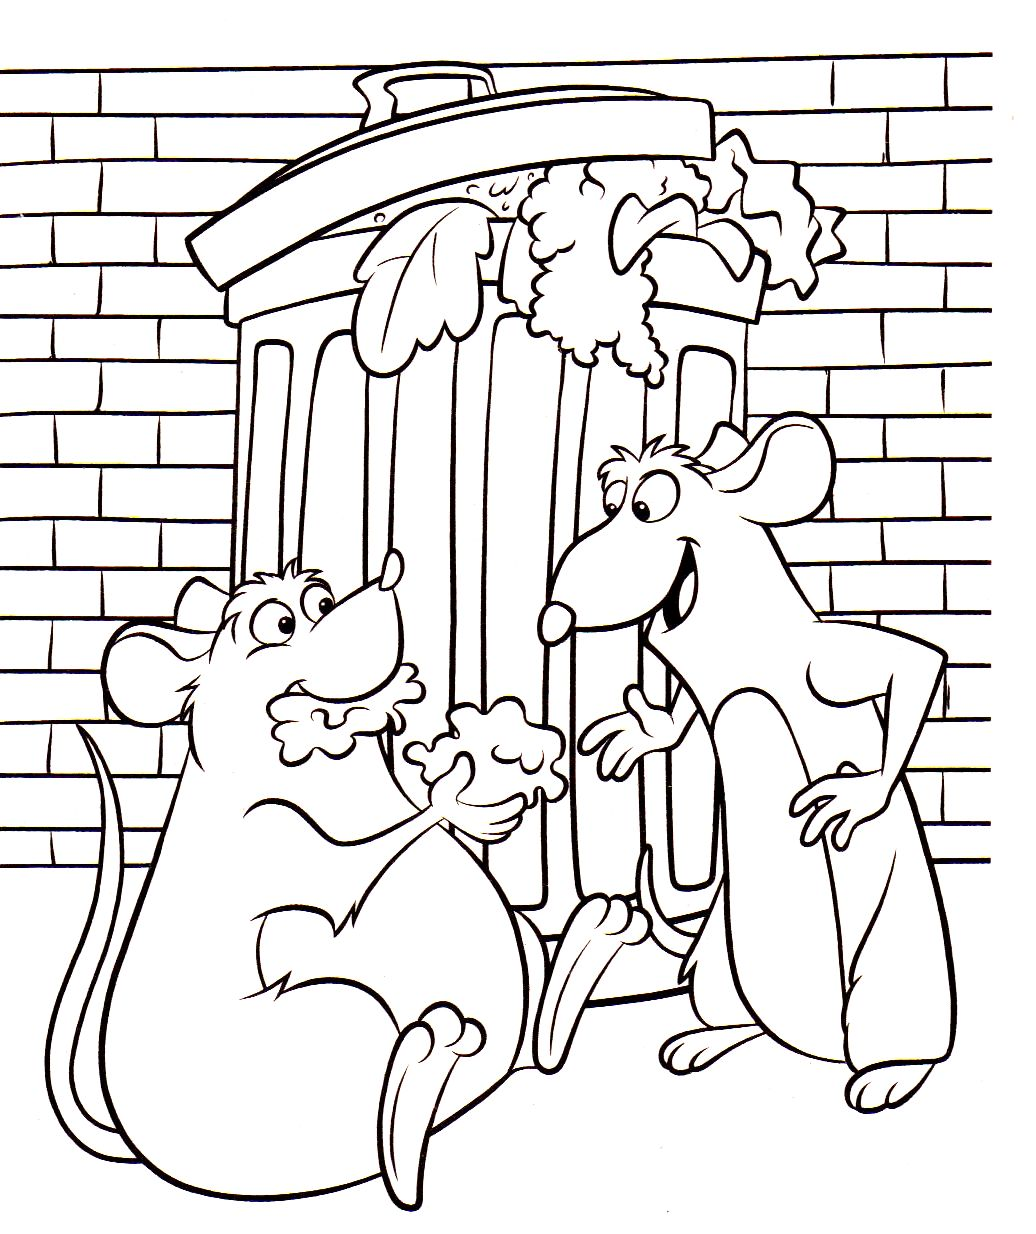 Uncategorized Ratatouille Coloring Pages story of a chef rat ratatouille 24 coloring pages smiling django page remy with his brother django